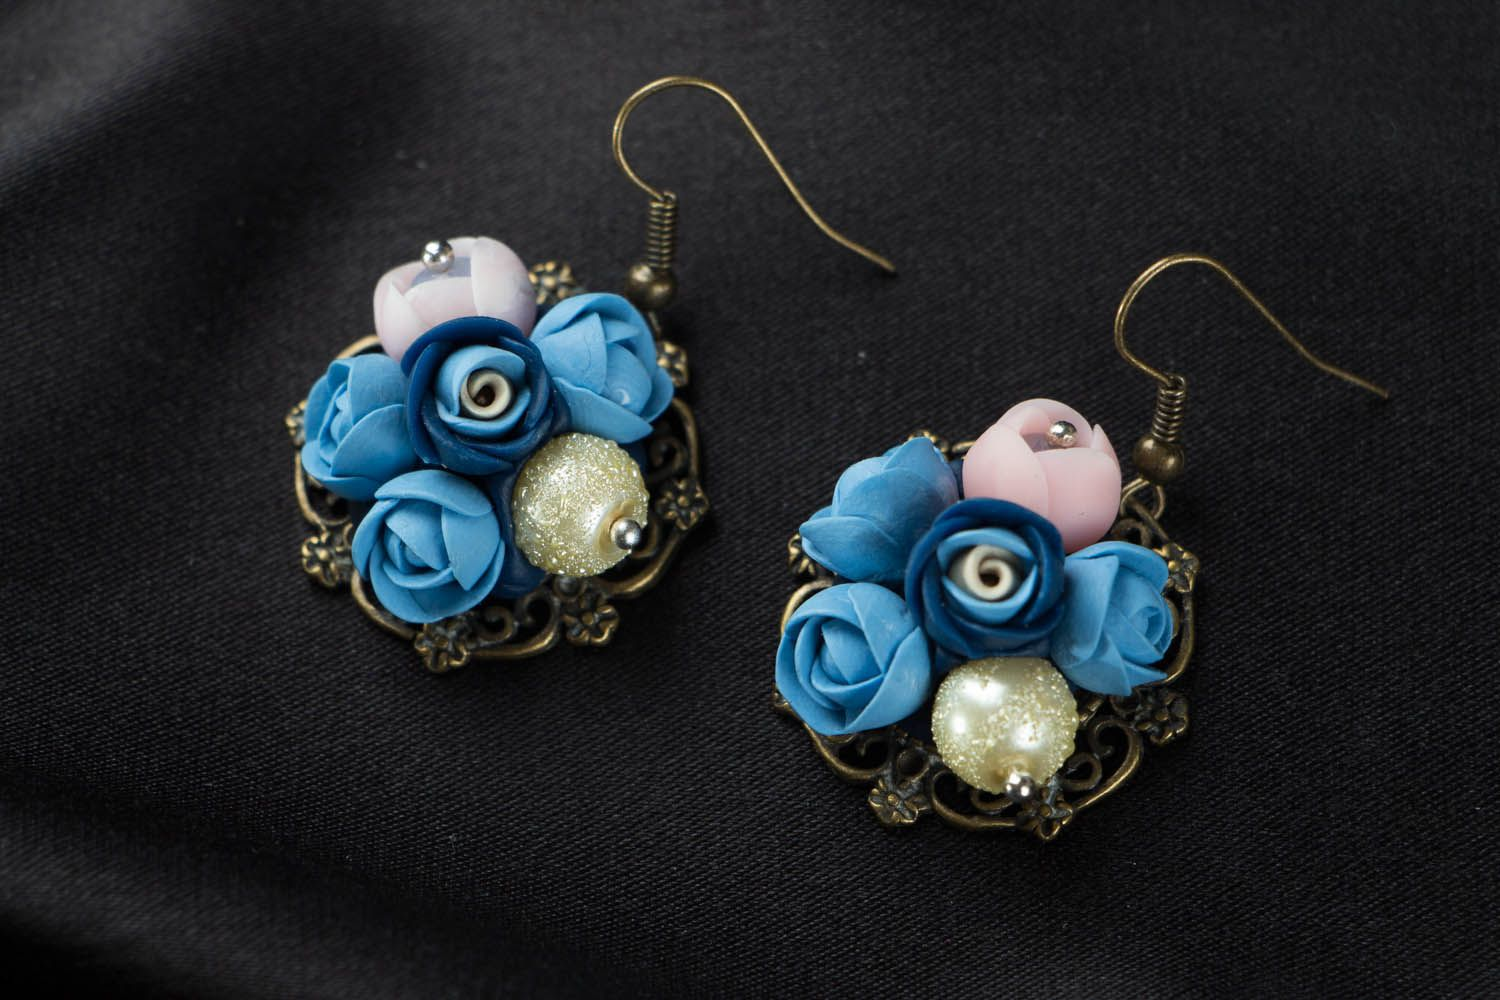 Flower earrings with charms  photo 1